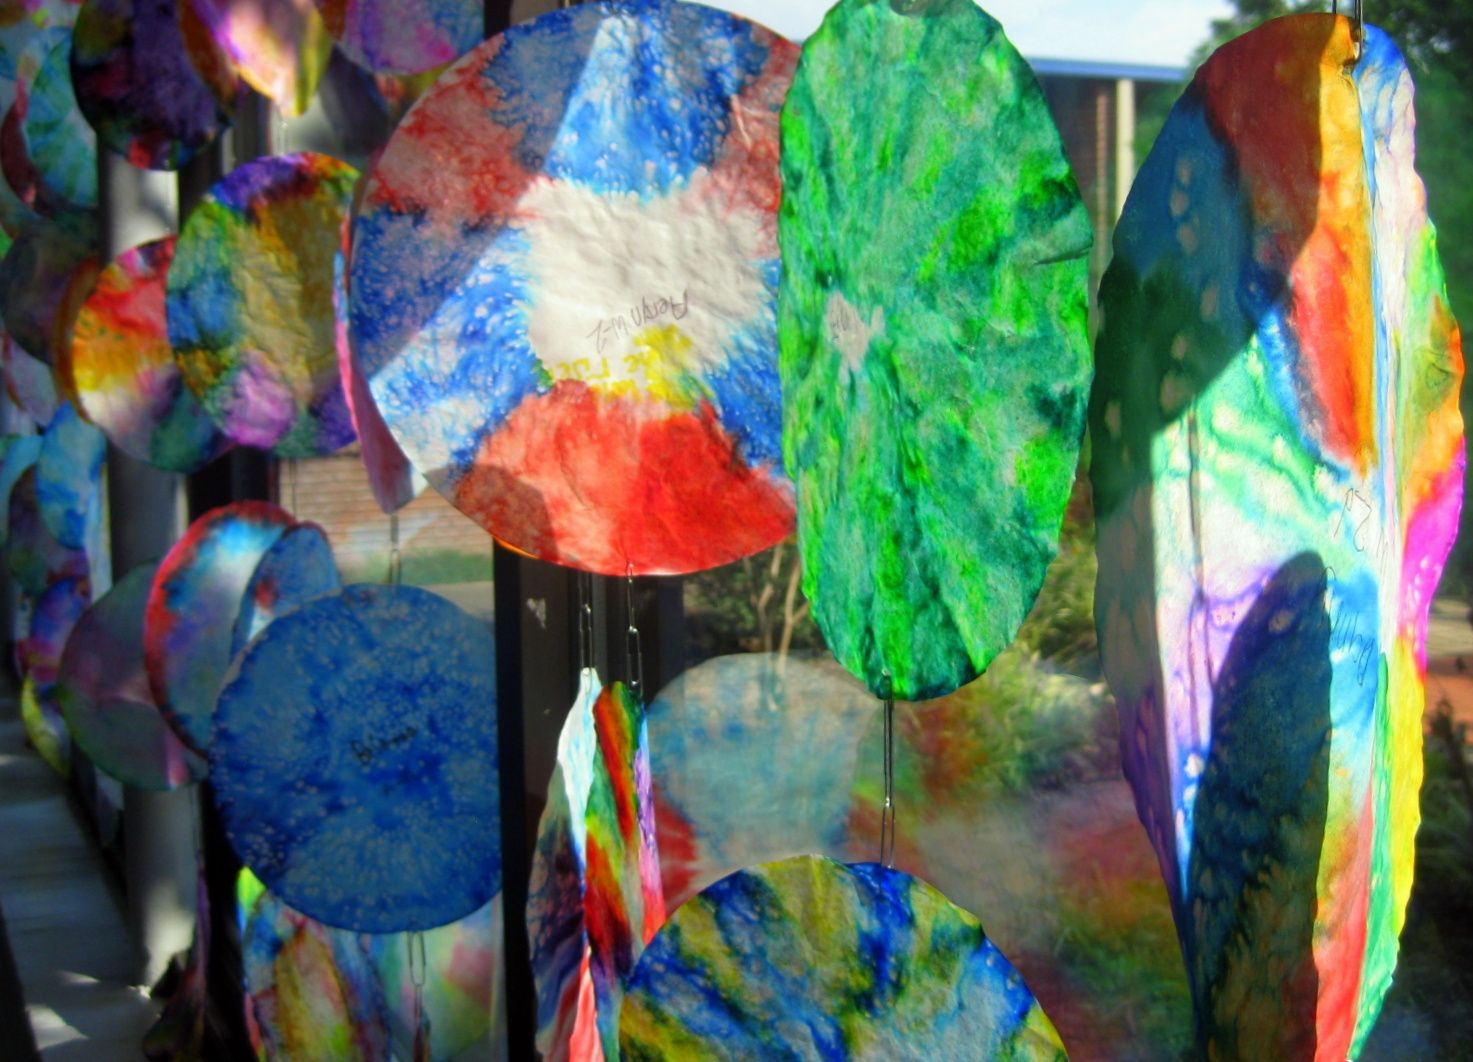 An elementary art teacher blog with art projects and lessons, DIY projects and outfit photos as well as clothing I have made myself. #dotdayartprojects